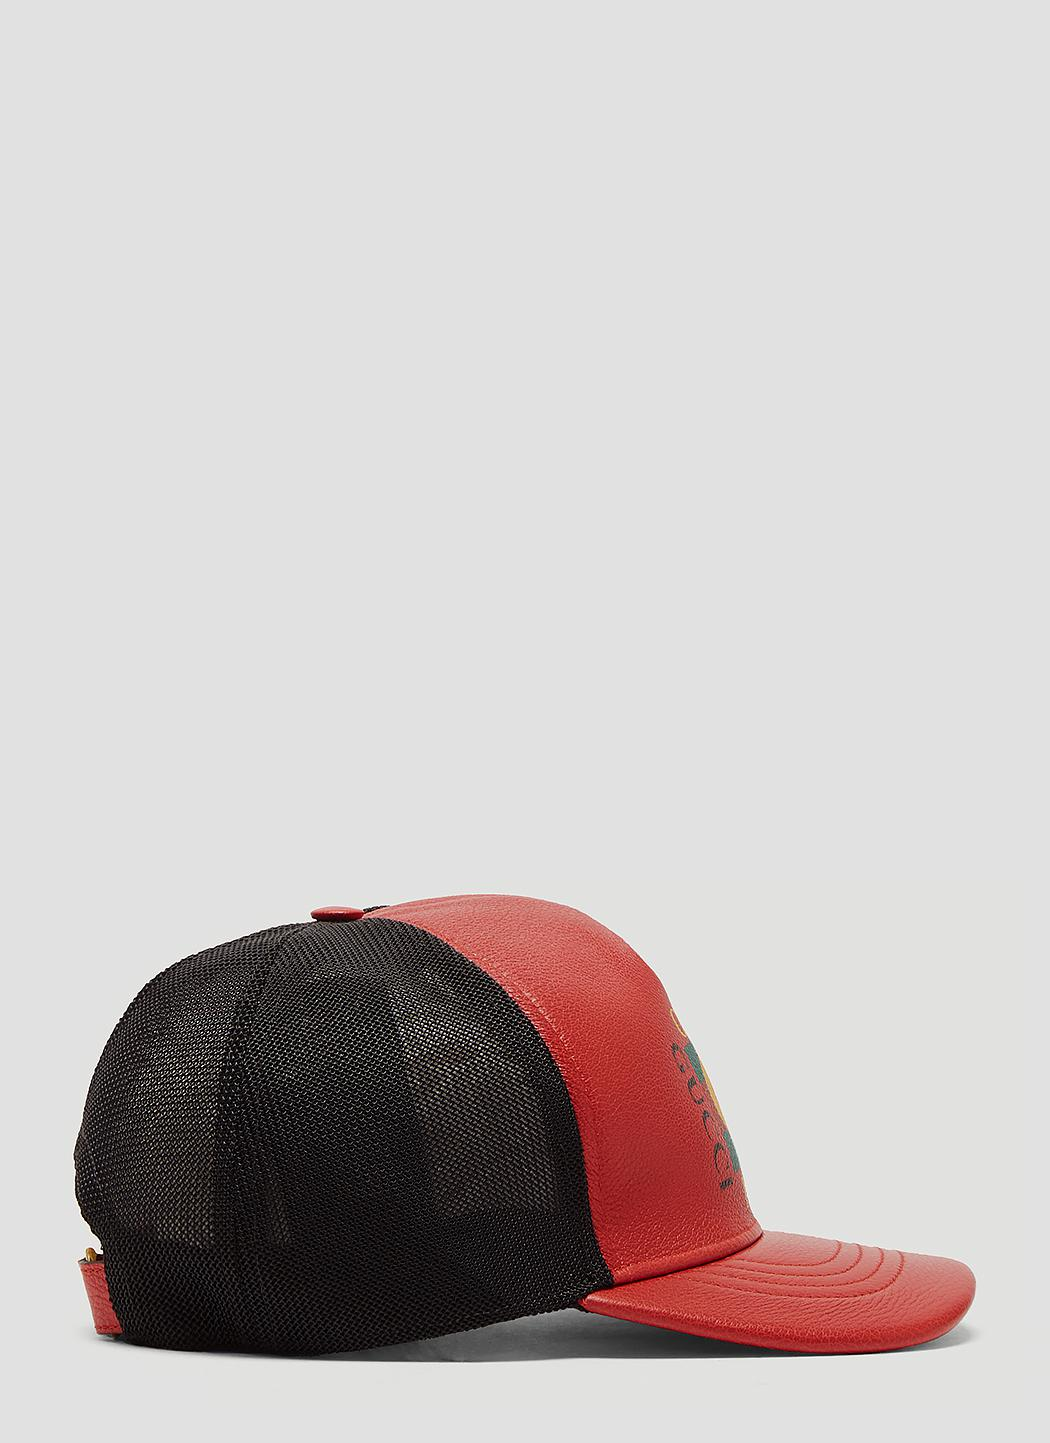 a0f10327a19 Gucci - Logo Print Leather Baseball Hat In Red for Men - Lyst. View  fullscreen